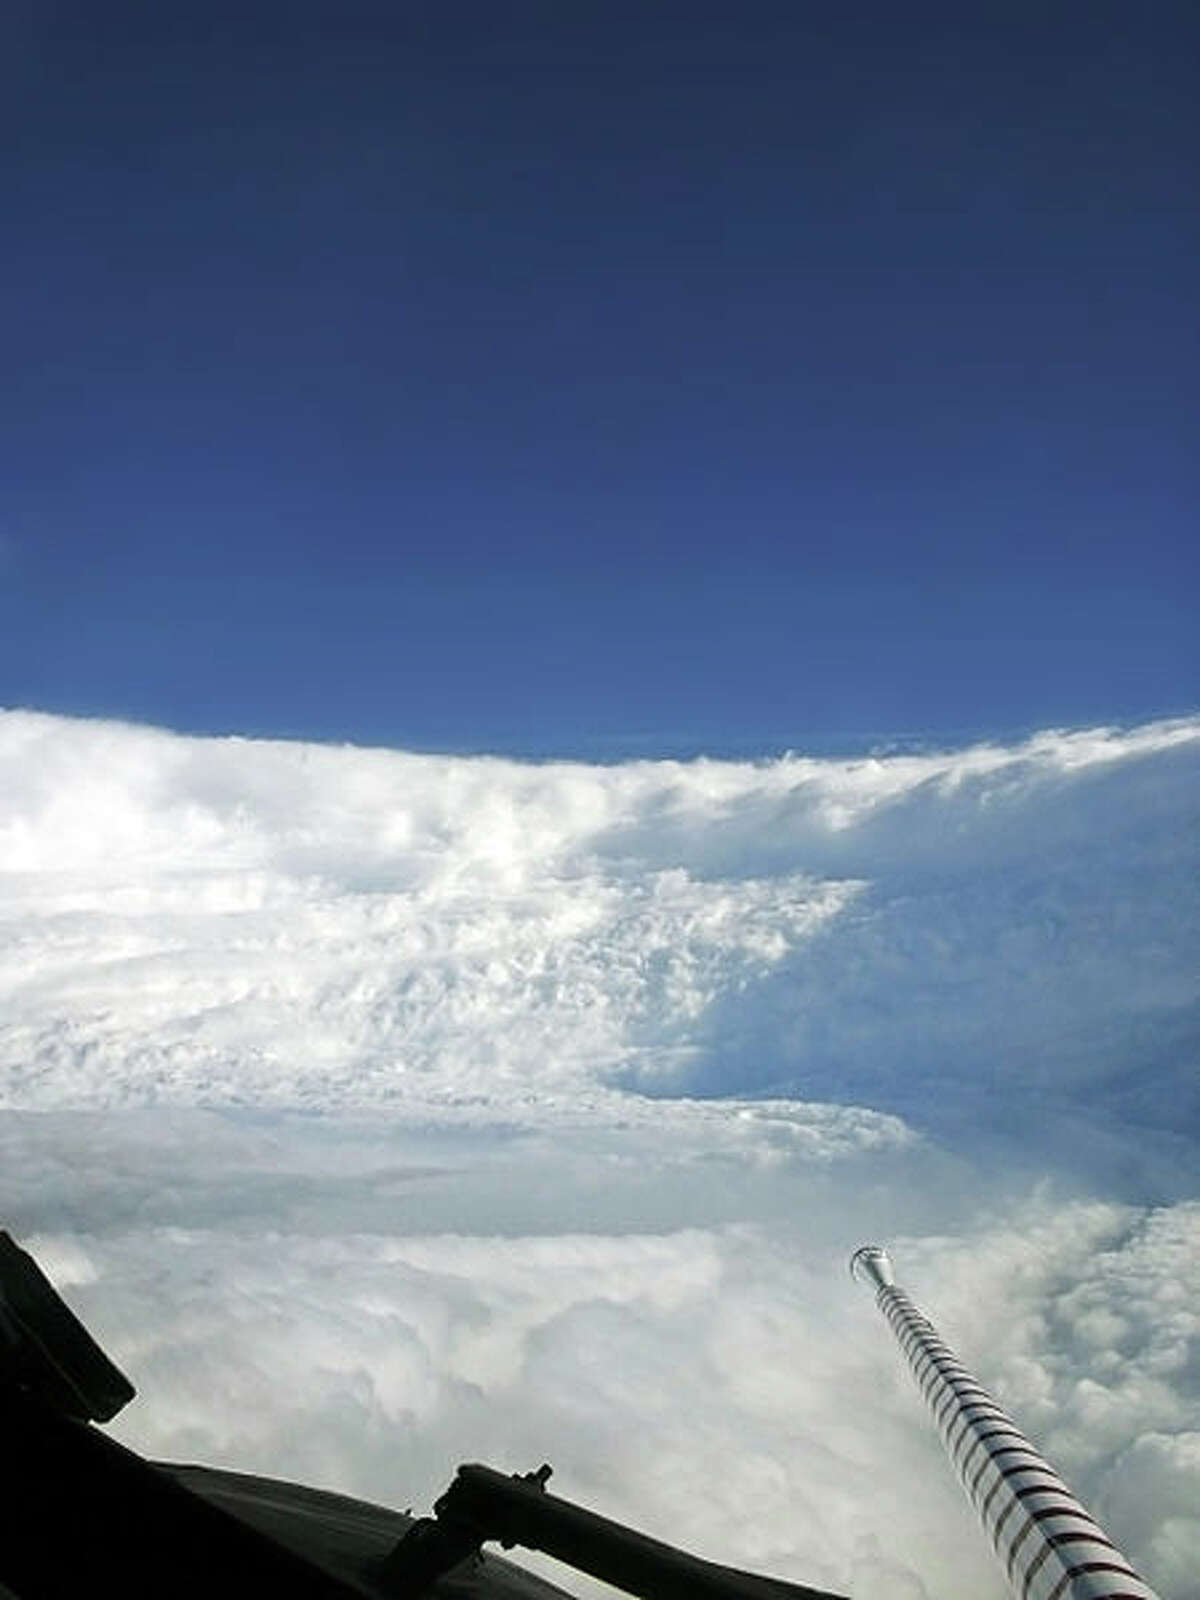 View of the eyewall of w:Hurricane Katrina taken on August 28, 2005, as seen from NOAA WP-3D Orion hurricane hunter aircraft before the storm made landfall on the United States Gulf Coast.